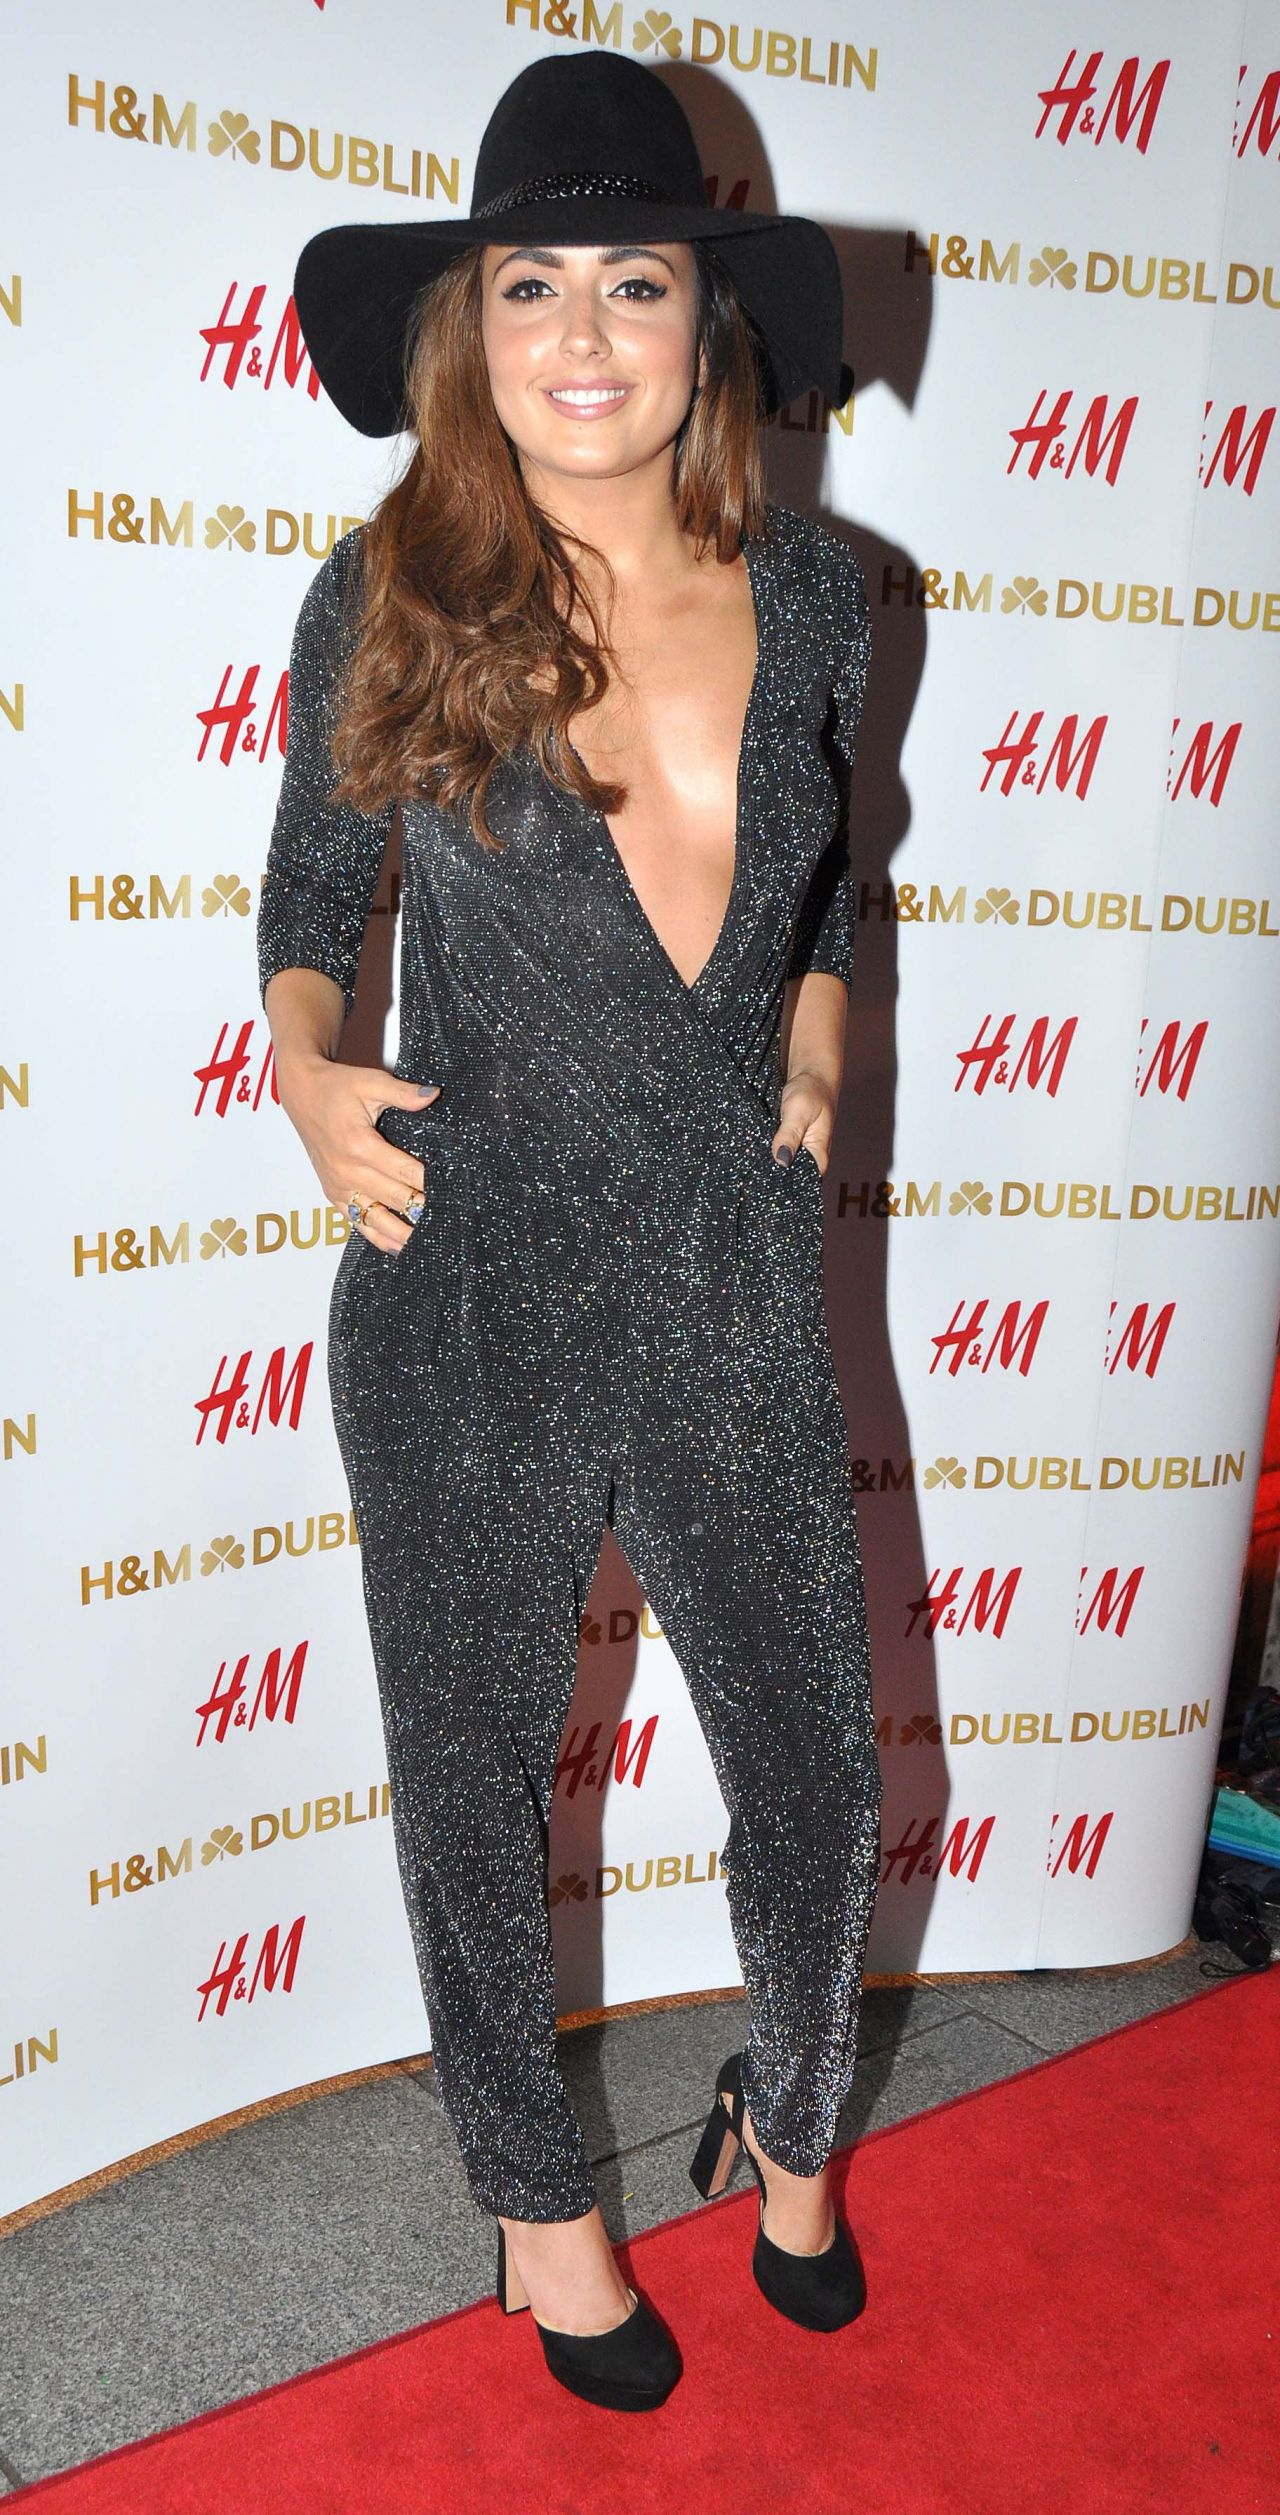 nadia-forde-h-m-store-launch-in-dublin-december-2014_1